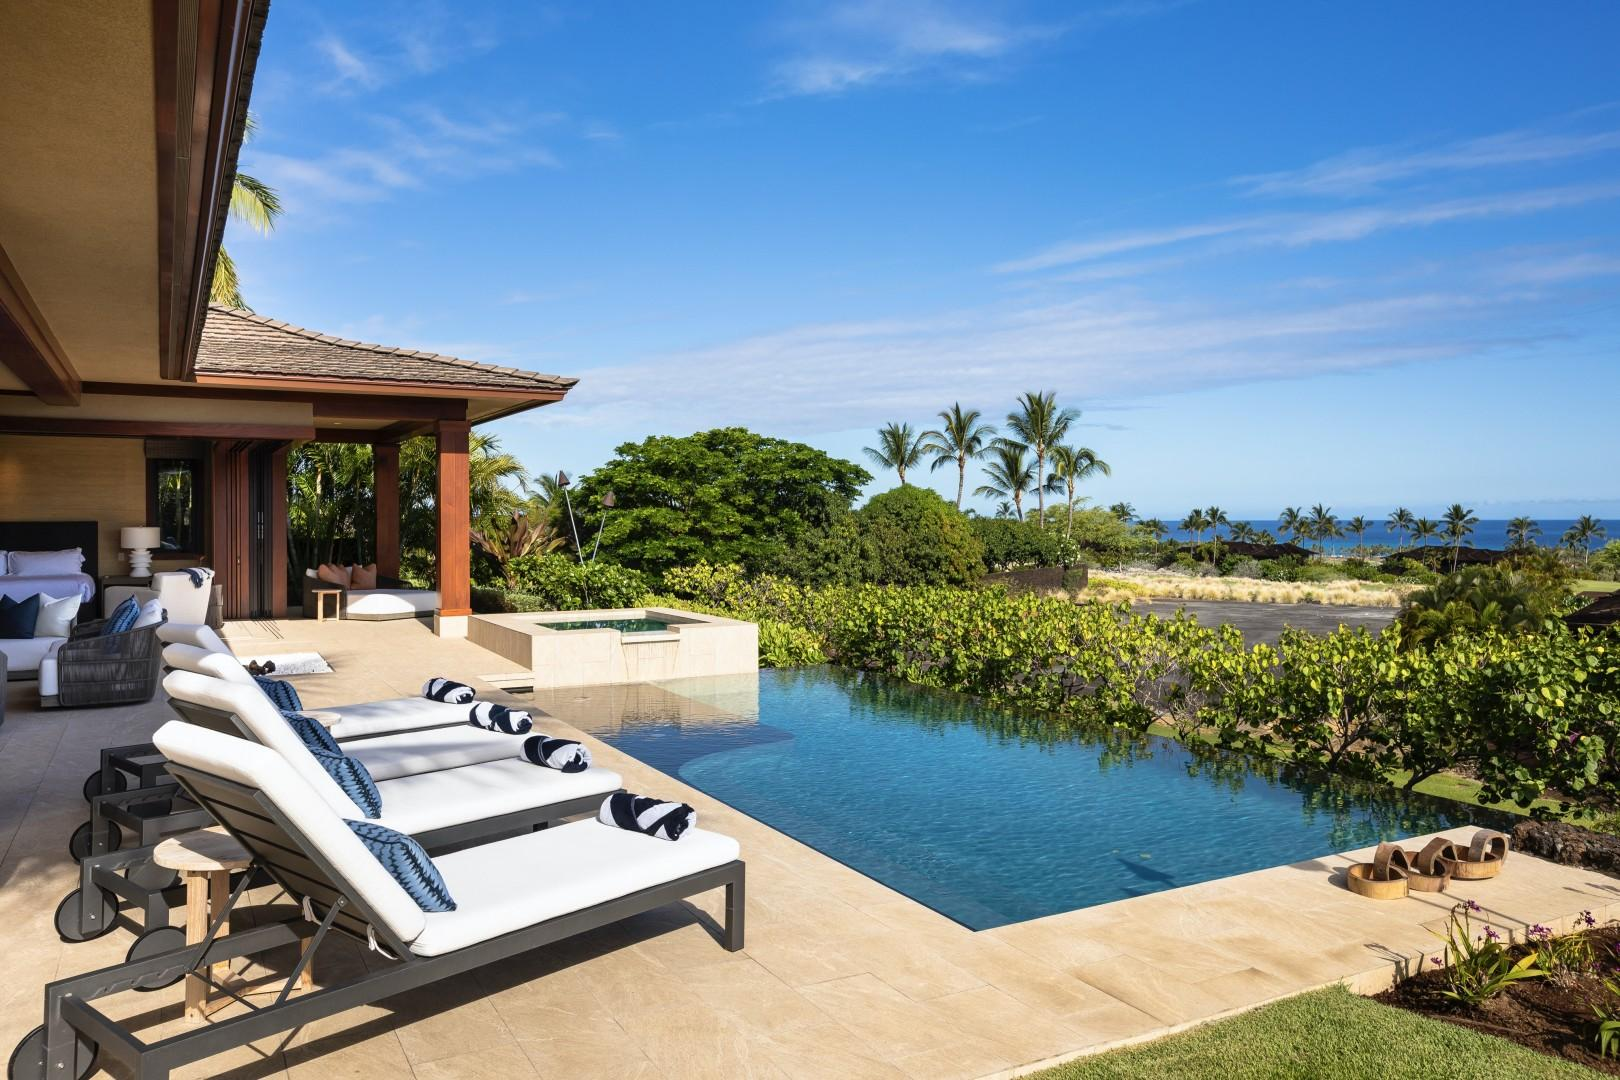 Gorgeous new construction luxury estate home professionally designed by Gina Willman Interiors with infinity pool, private spa and ocean views.